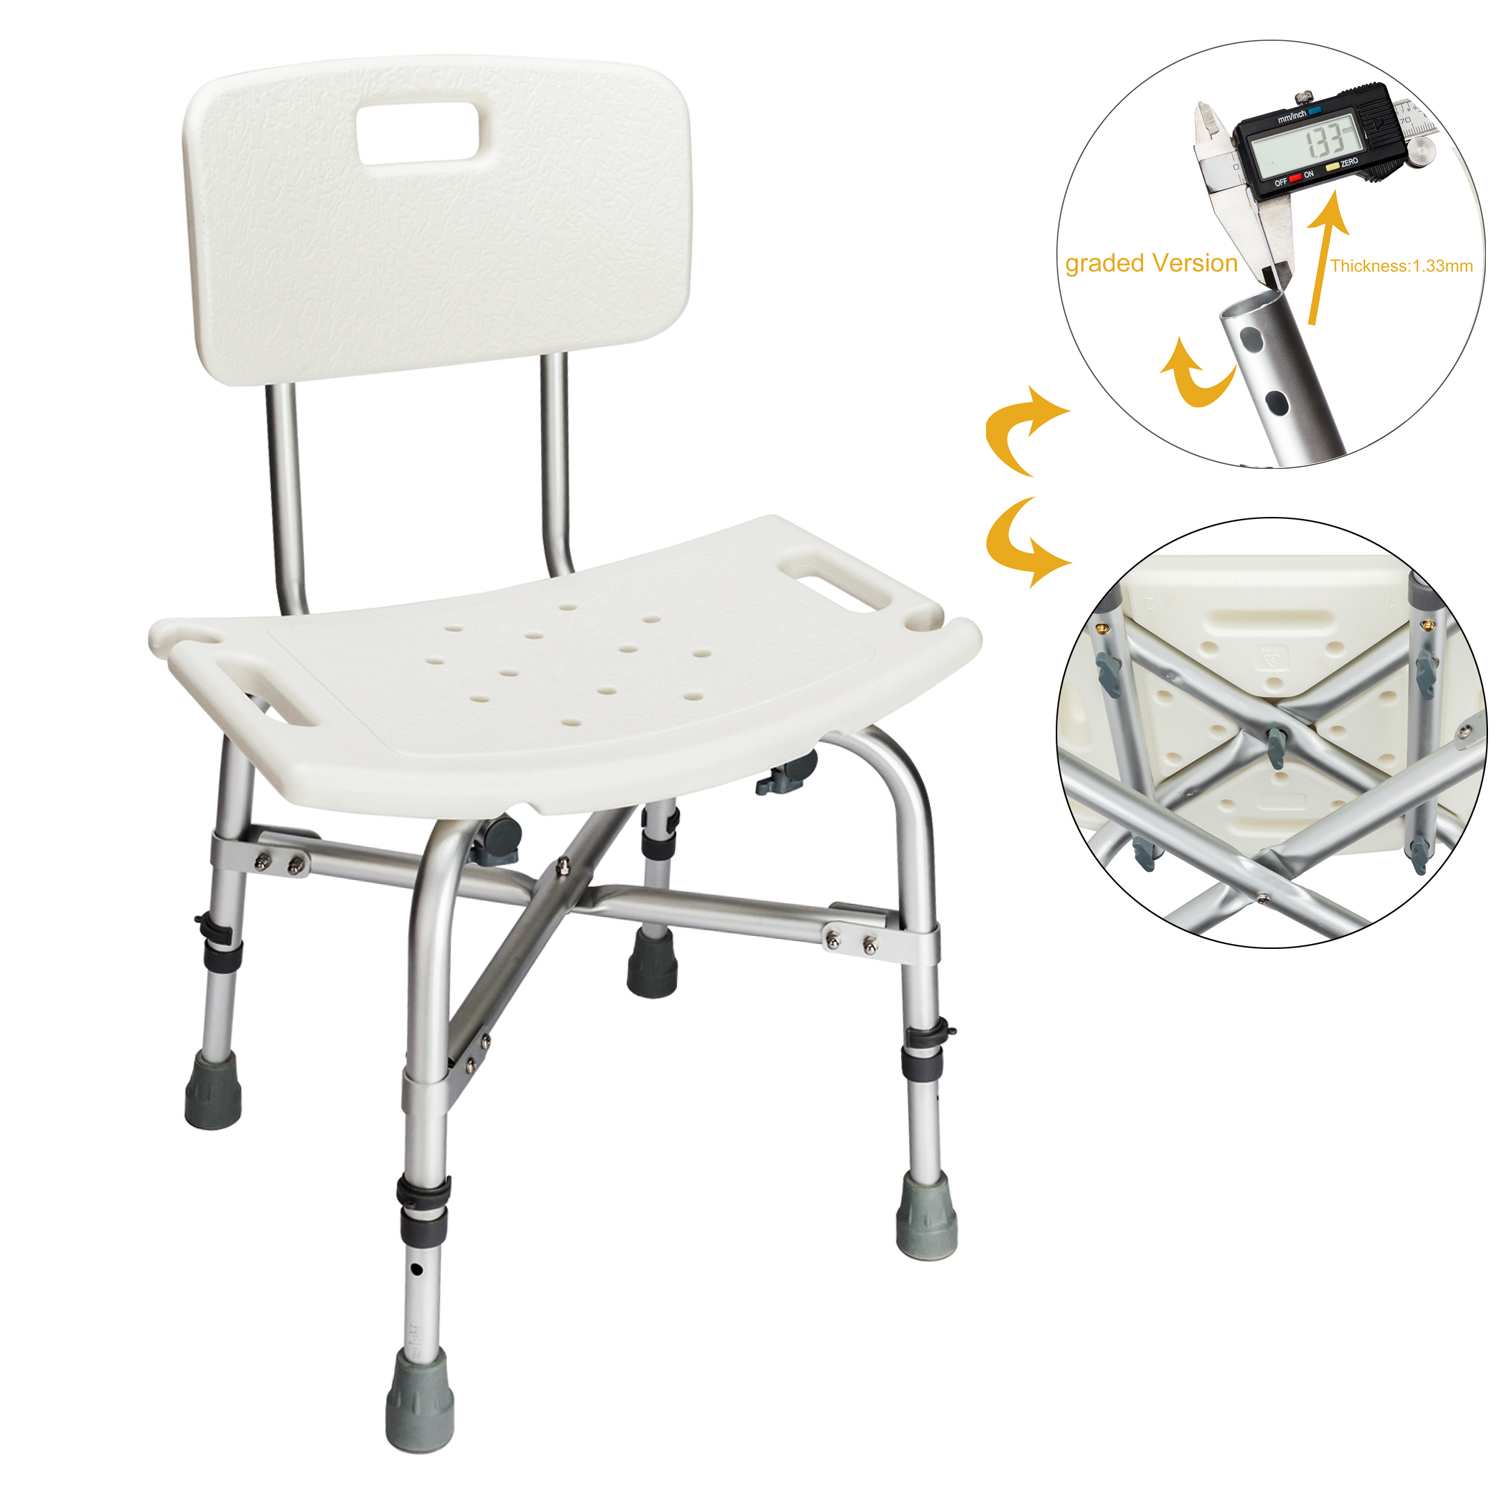 Zimtown 450LBS Heavy Duty Medical Shower Chair Bath Seat, 6 Height Transfer Bench Stool with Back